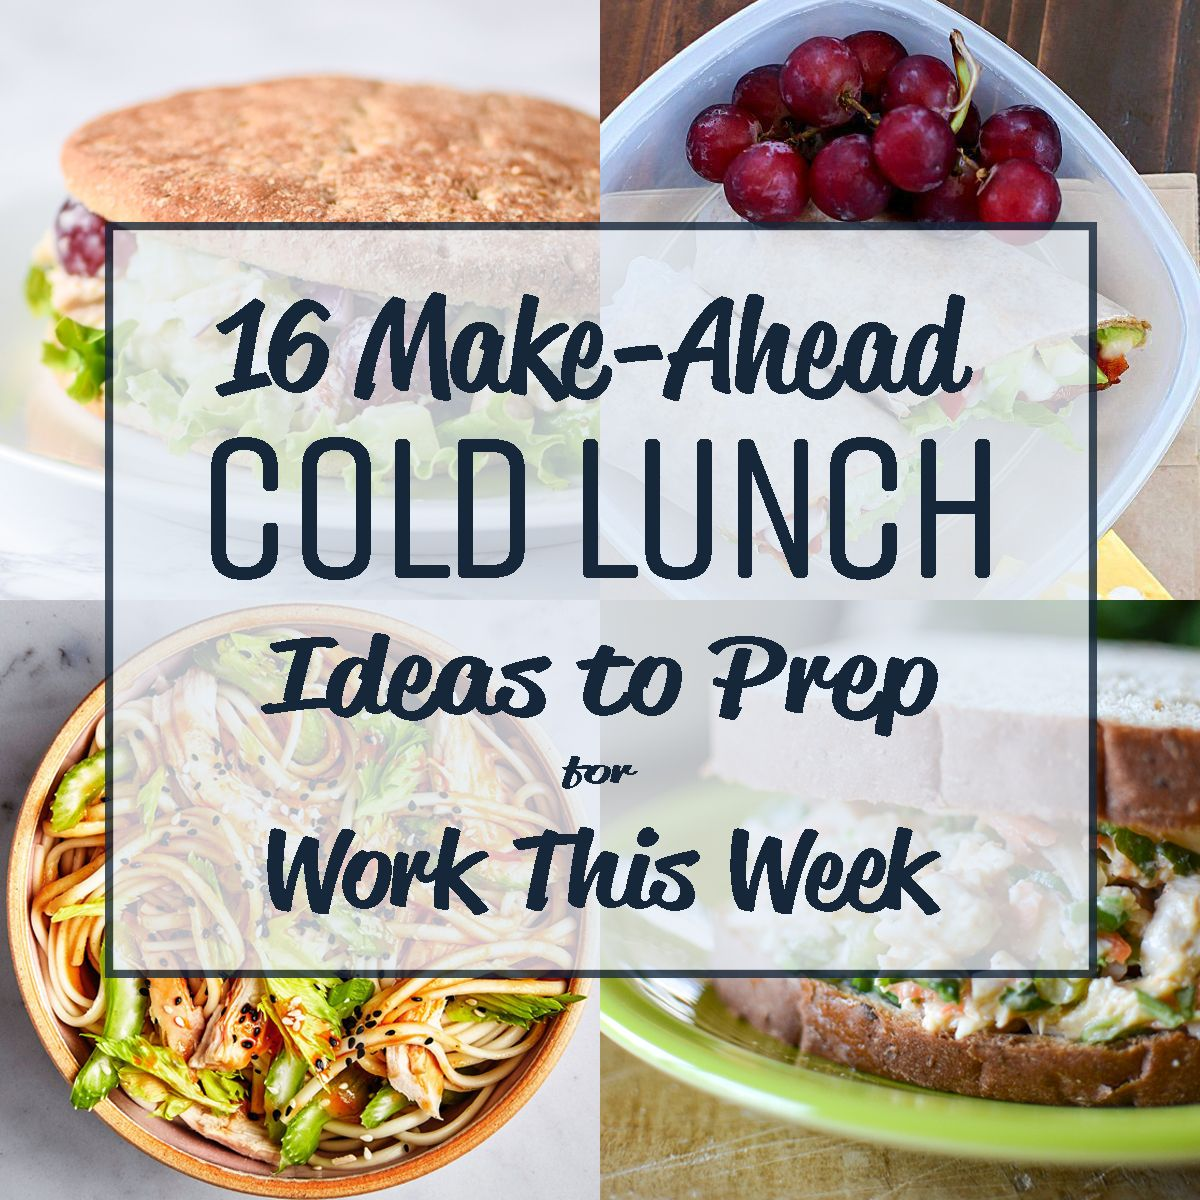 16 Make-Ahead Cold Lunch Ideas to Prep for Work This Week images